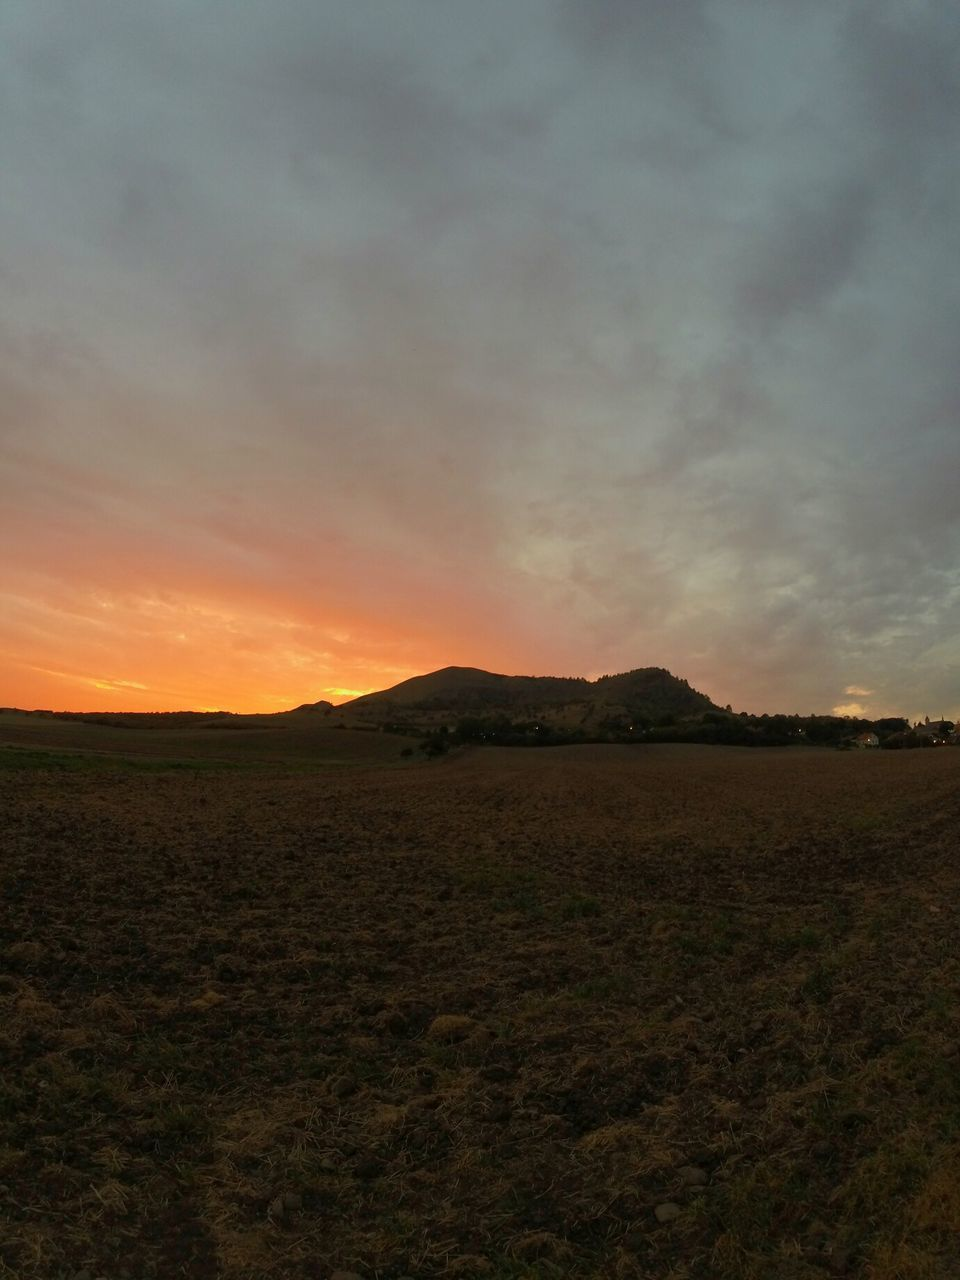 sunset, landscape, nature, tranquility, scenics, tranquil scene, beauty in nature, field, sky, no people, outdoors, mountain, day